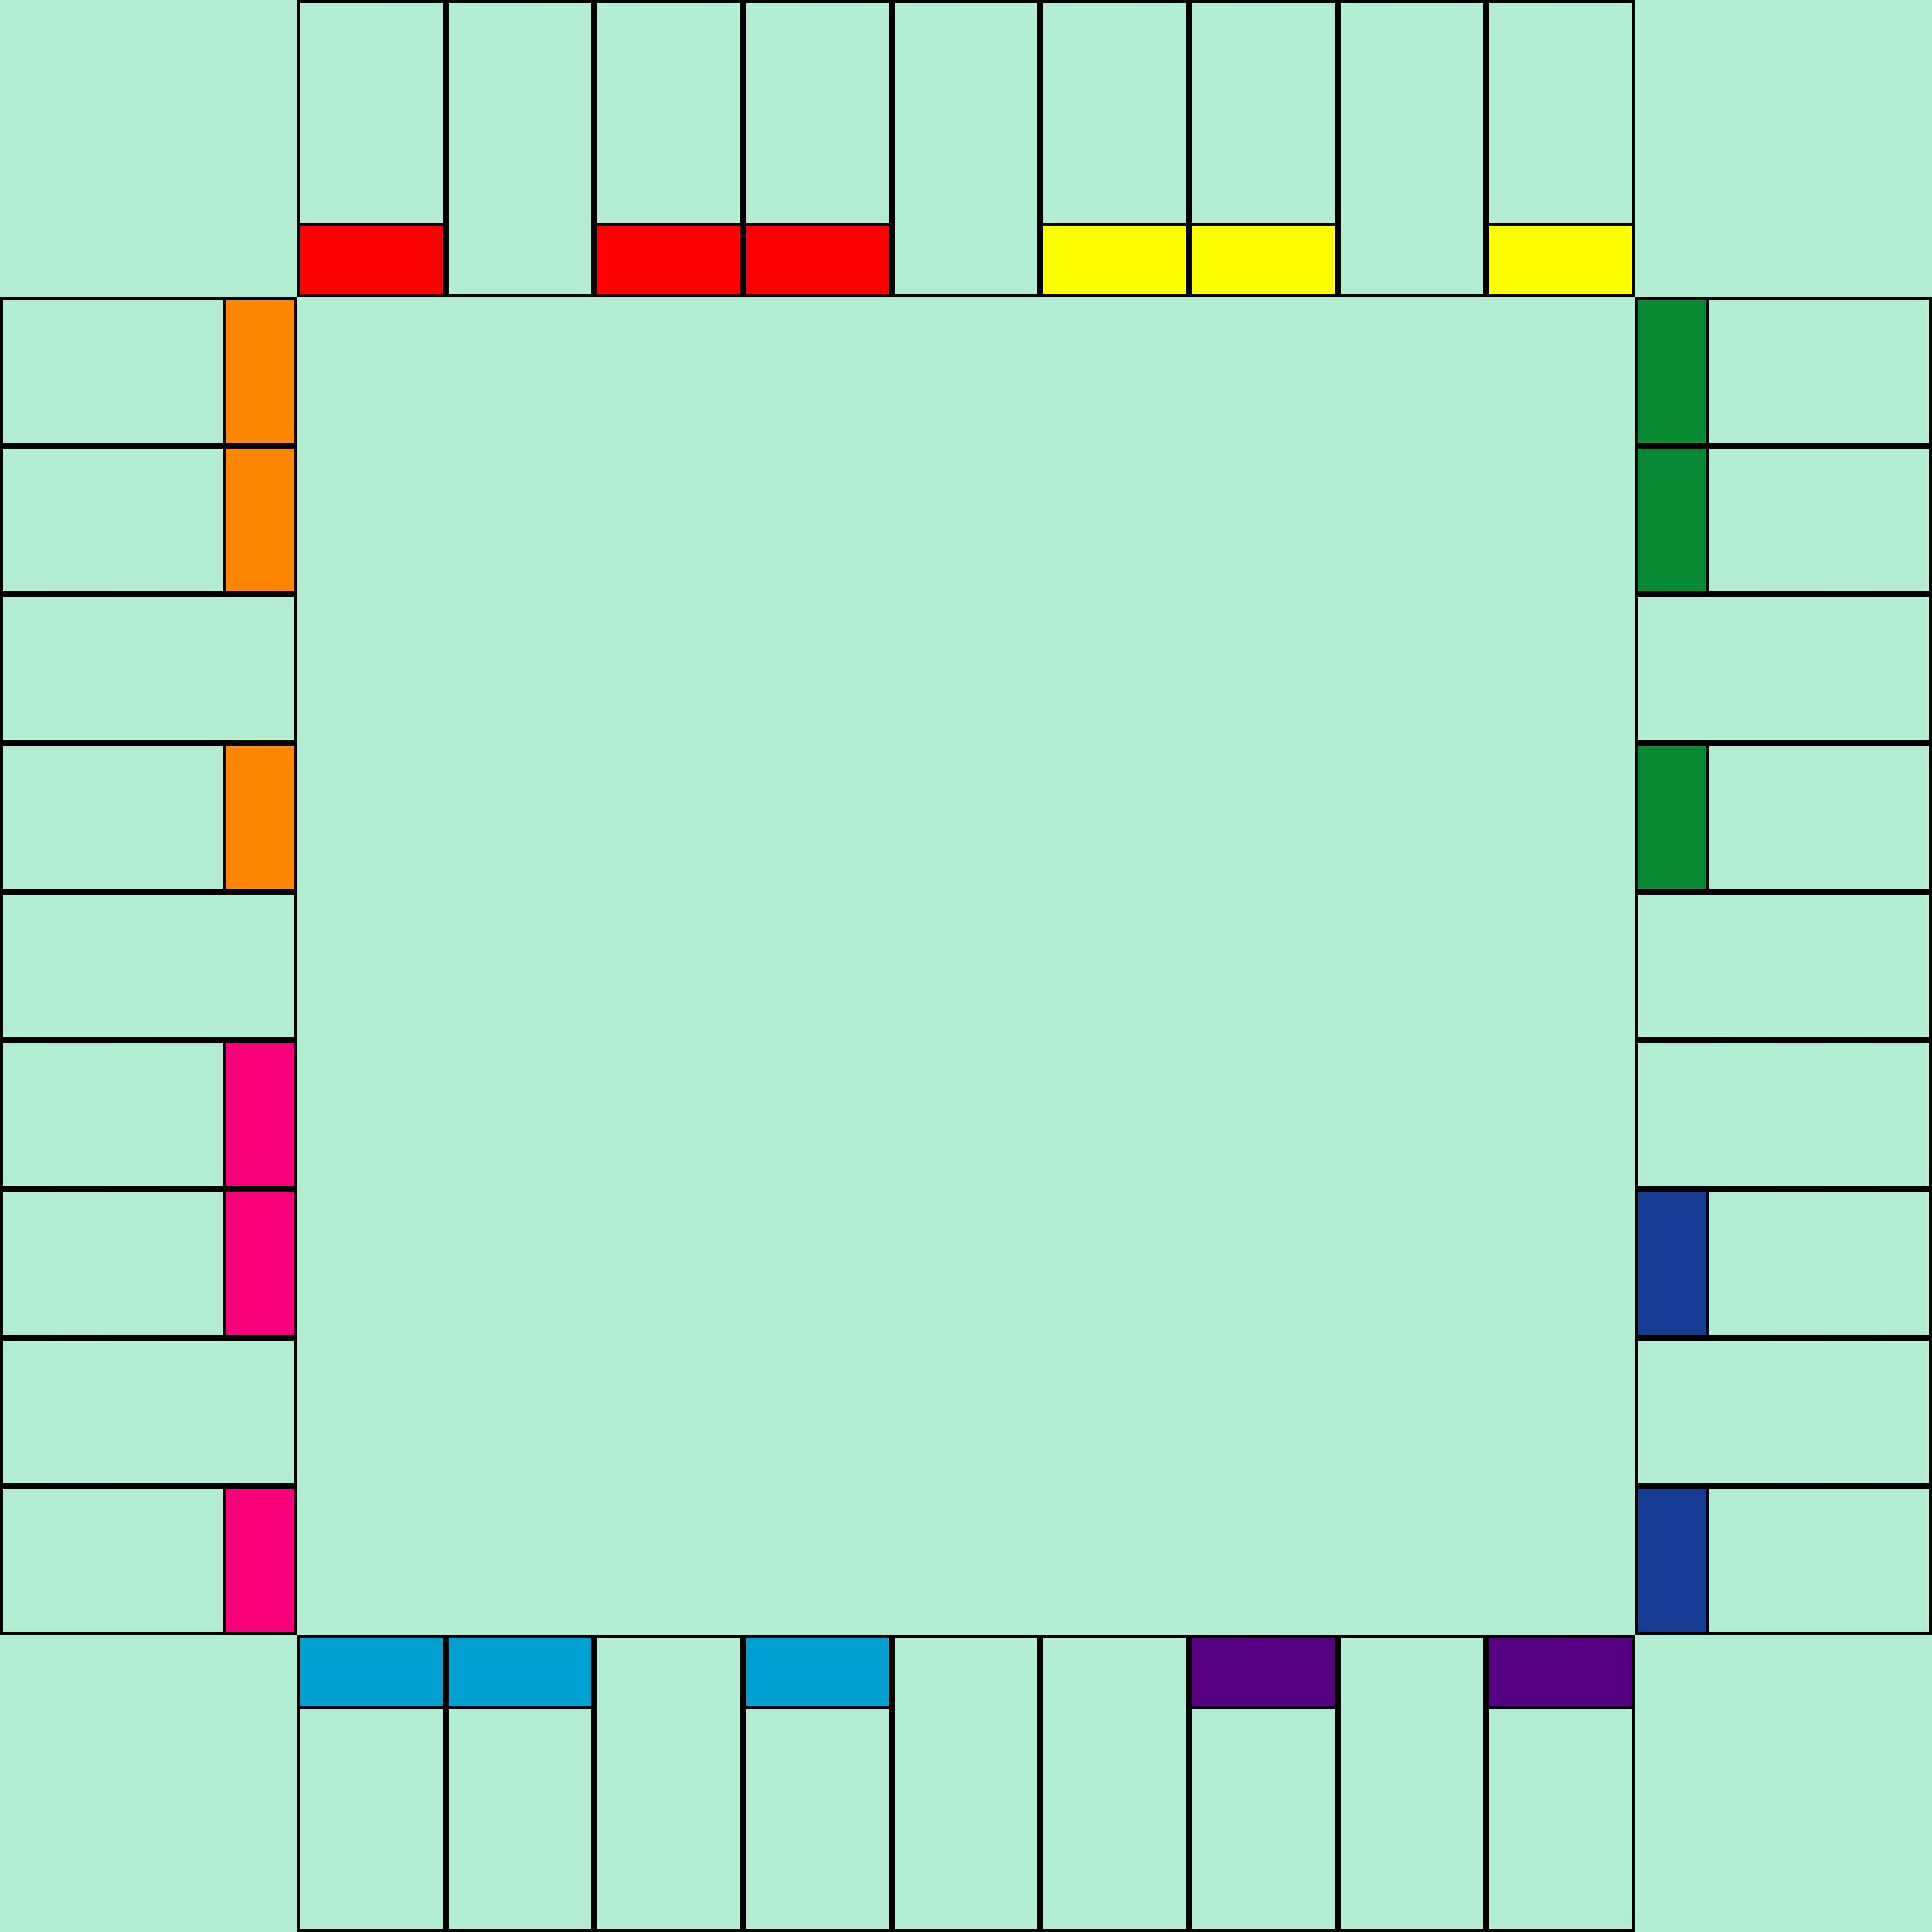 Monopoly Board Printable Awesome Blank Board Could We Use This